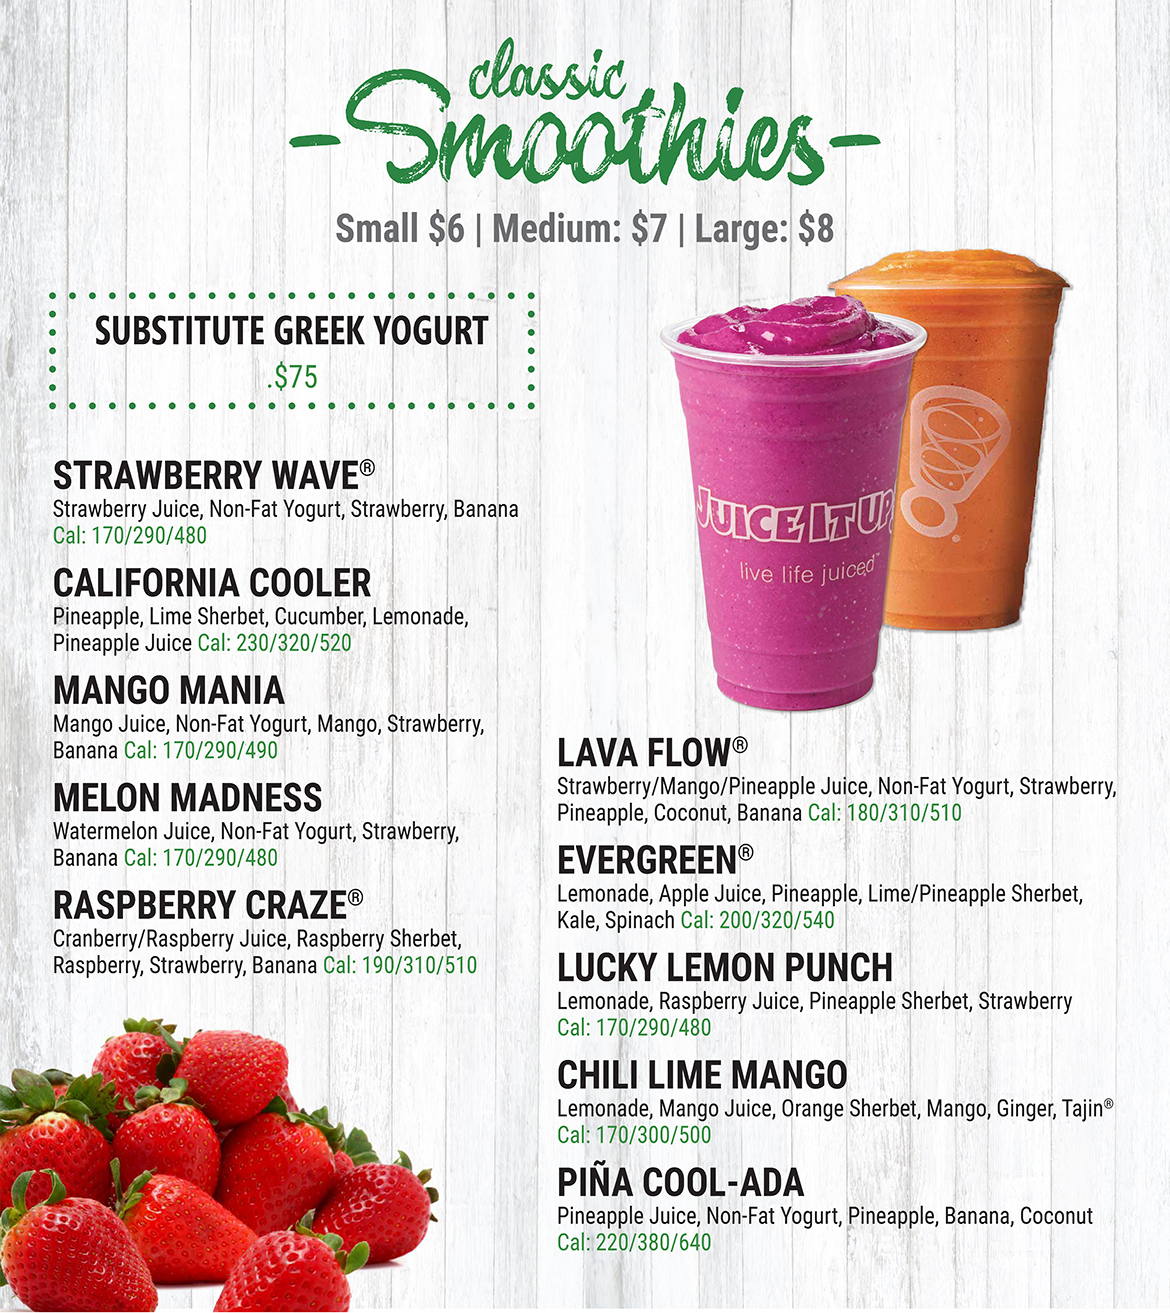 Classic Smoothies. Small = $6. Medium - $7. Large - $8. Strawberry Wave: Strawberry Juice, Non-Fat Yogurt, Strawberry, and Banana. Calories: 170/290/480. California Cooler: Pineapple, Lime Sherbet, Cucumber, Lemonade, and Pineapple Juice. Calories: 230/320/520. Mango Mania: Mango Juice, Non-Fat Yogurt, Mango, Strawberry, and Banana. Calories: 170/290/490. Melon Madness: Watermelon Juice, Non-Fat Yogurt, Strawberry, and Banana. Calories: 170/290/480. Raspberry Craze: Cranberry/Raspberry Juice, Raspberry Sherbet, Raspberry, Strawberry, and Banana. Calories: 190/310/510. Lava Flow: Strawberry/Mango/Pineapple Juice, Non-Fat Yogurt, Strawberry, Pineapple, Coconut, and Banana. Calories: 180/310/510. Evergreen: Lemonade, Apple Juice, Pineapple, Lime/Pineapple Sherbet, Kale, and Spinach. Calories: 200/320/540. Lucky Lemon Punch: Lemonade, Raspberry Juice, Pineapple Sherbet, and Strawberry. Calories: 170/290/480. Chili Lime Mango: Lemonade, Mango Juice, Orange Sherbet, Mango, Ginger, and Tajin. Calories: 170/300/500. Pina Cool-Ada: Pineapple Juice, Non-Fat Yogurt, Pineapple, Banana, and Coconut. Calories: 220/380/640. Substitute Grrek Yogurt for Non-Fat Yogurt - $0.75.